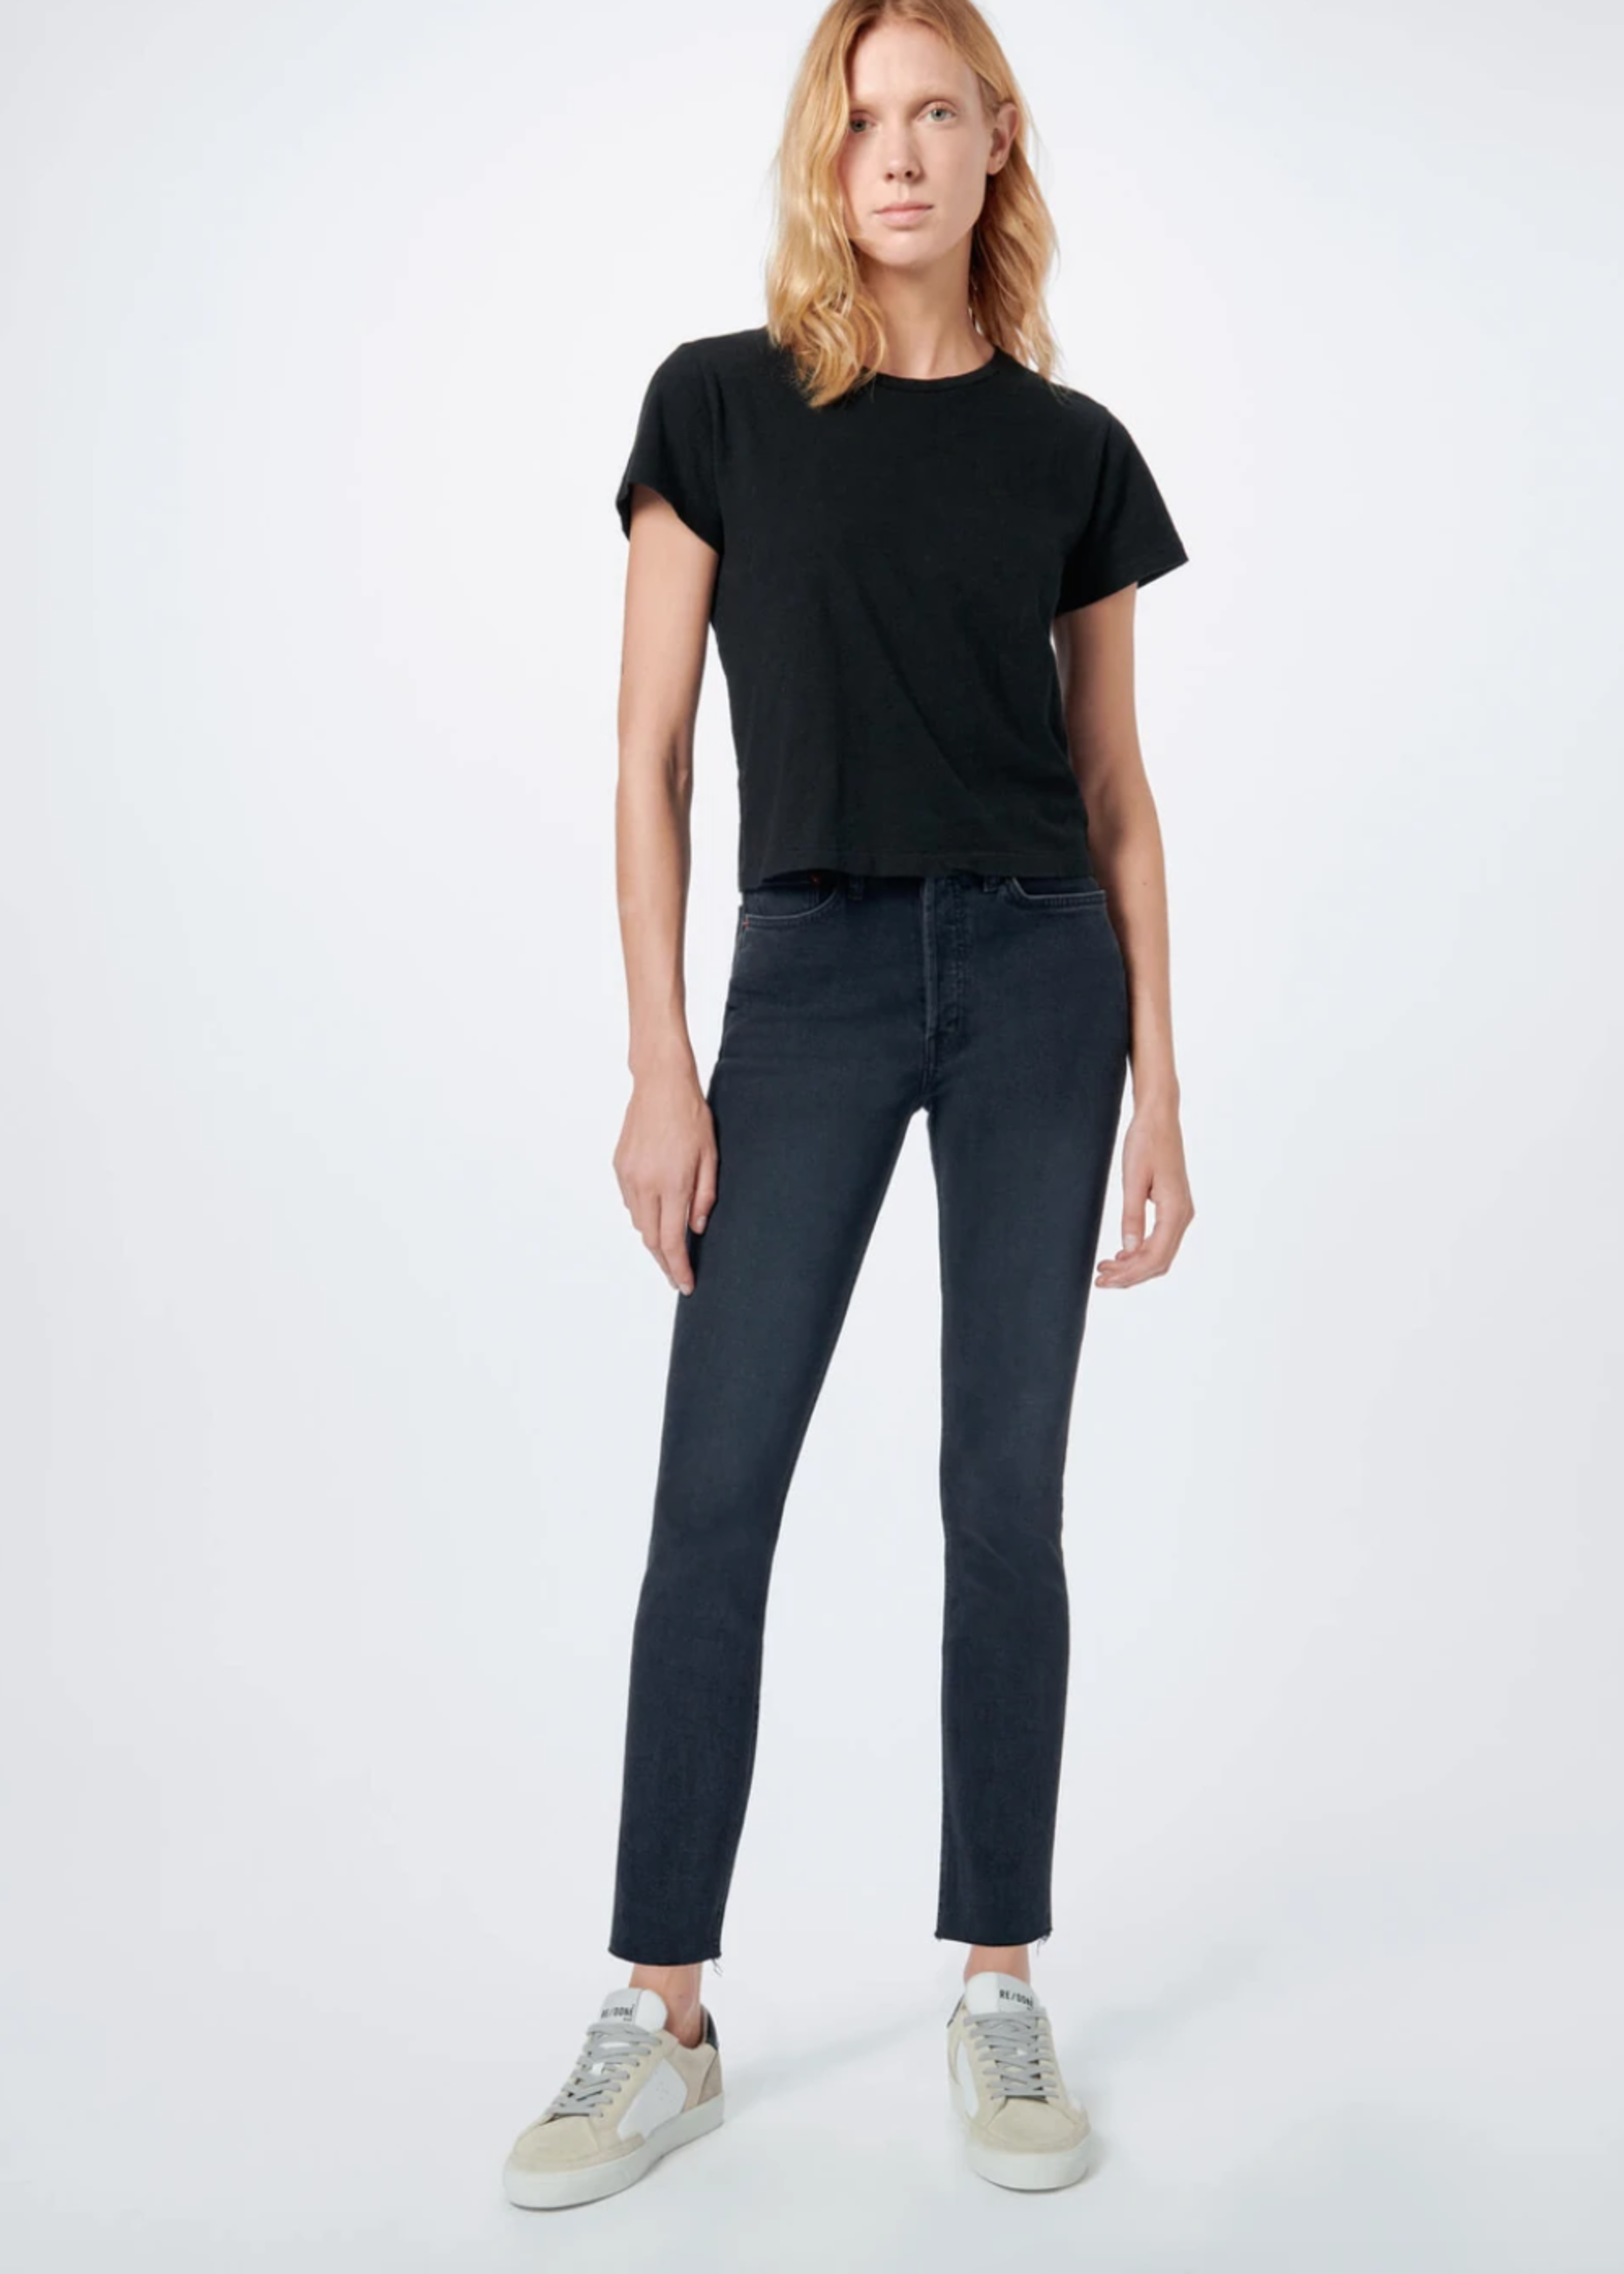 RE/DONE 90S HIGH RSE ANKLE CROP FADED BLACK 4/21